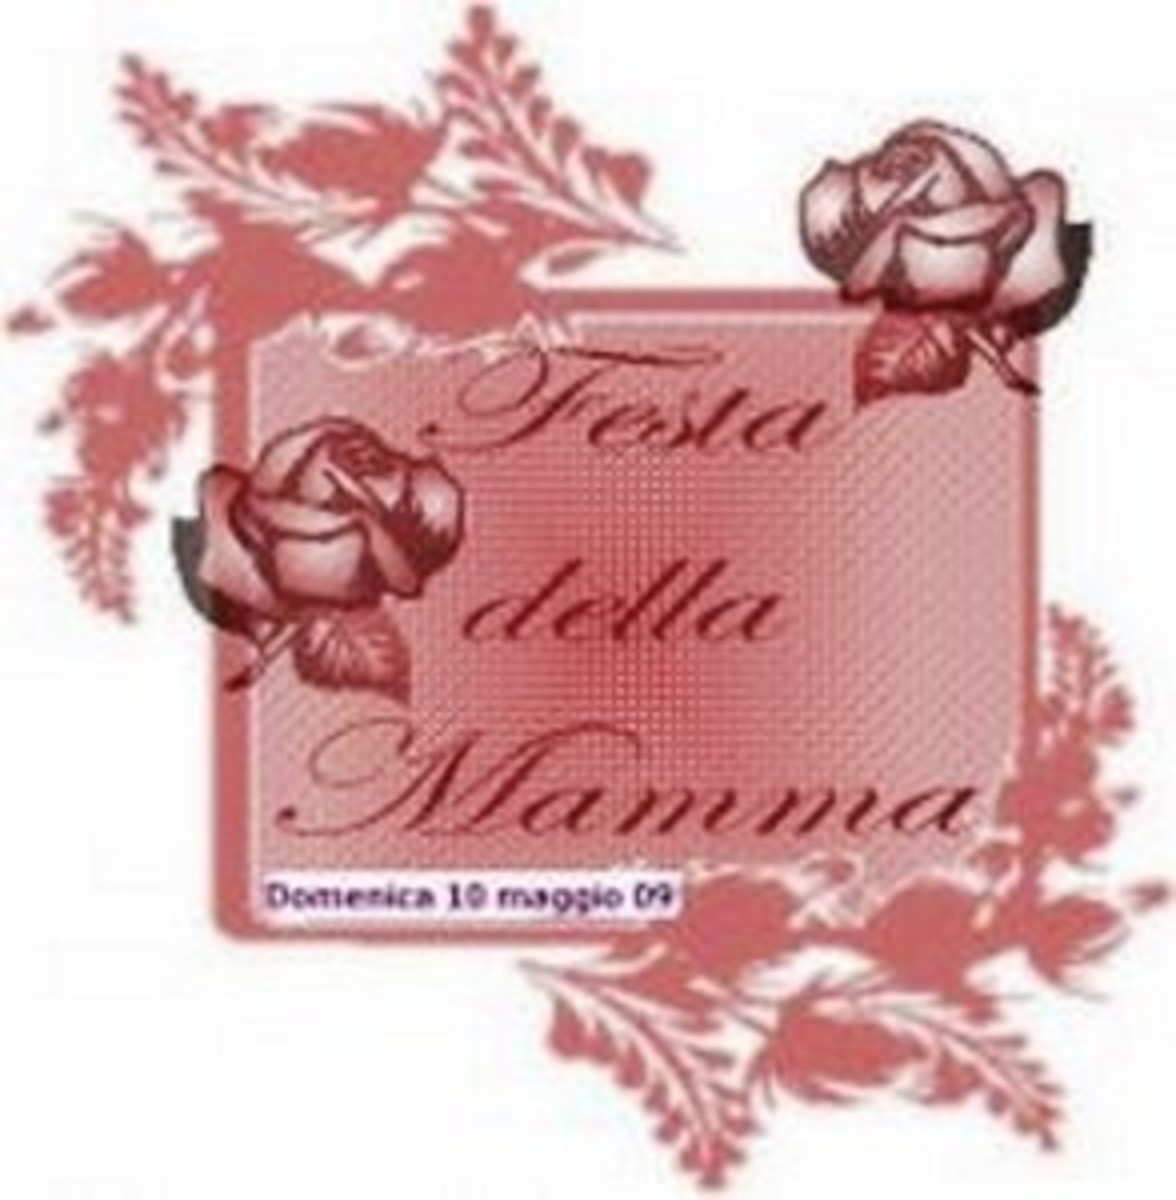 Happy Mothers Day card in Italian - When is Mothers Day?